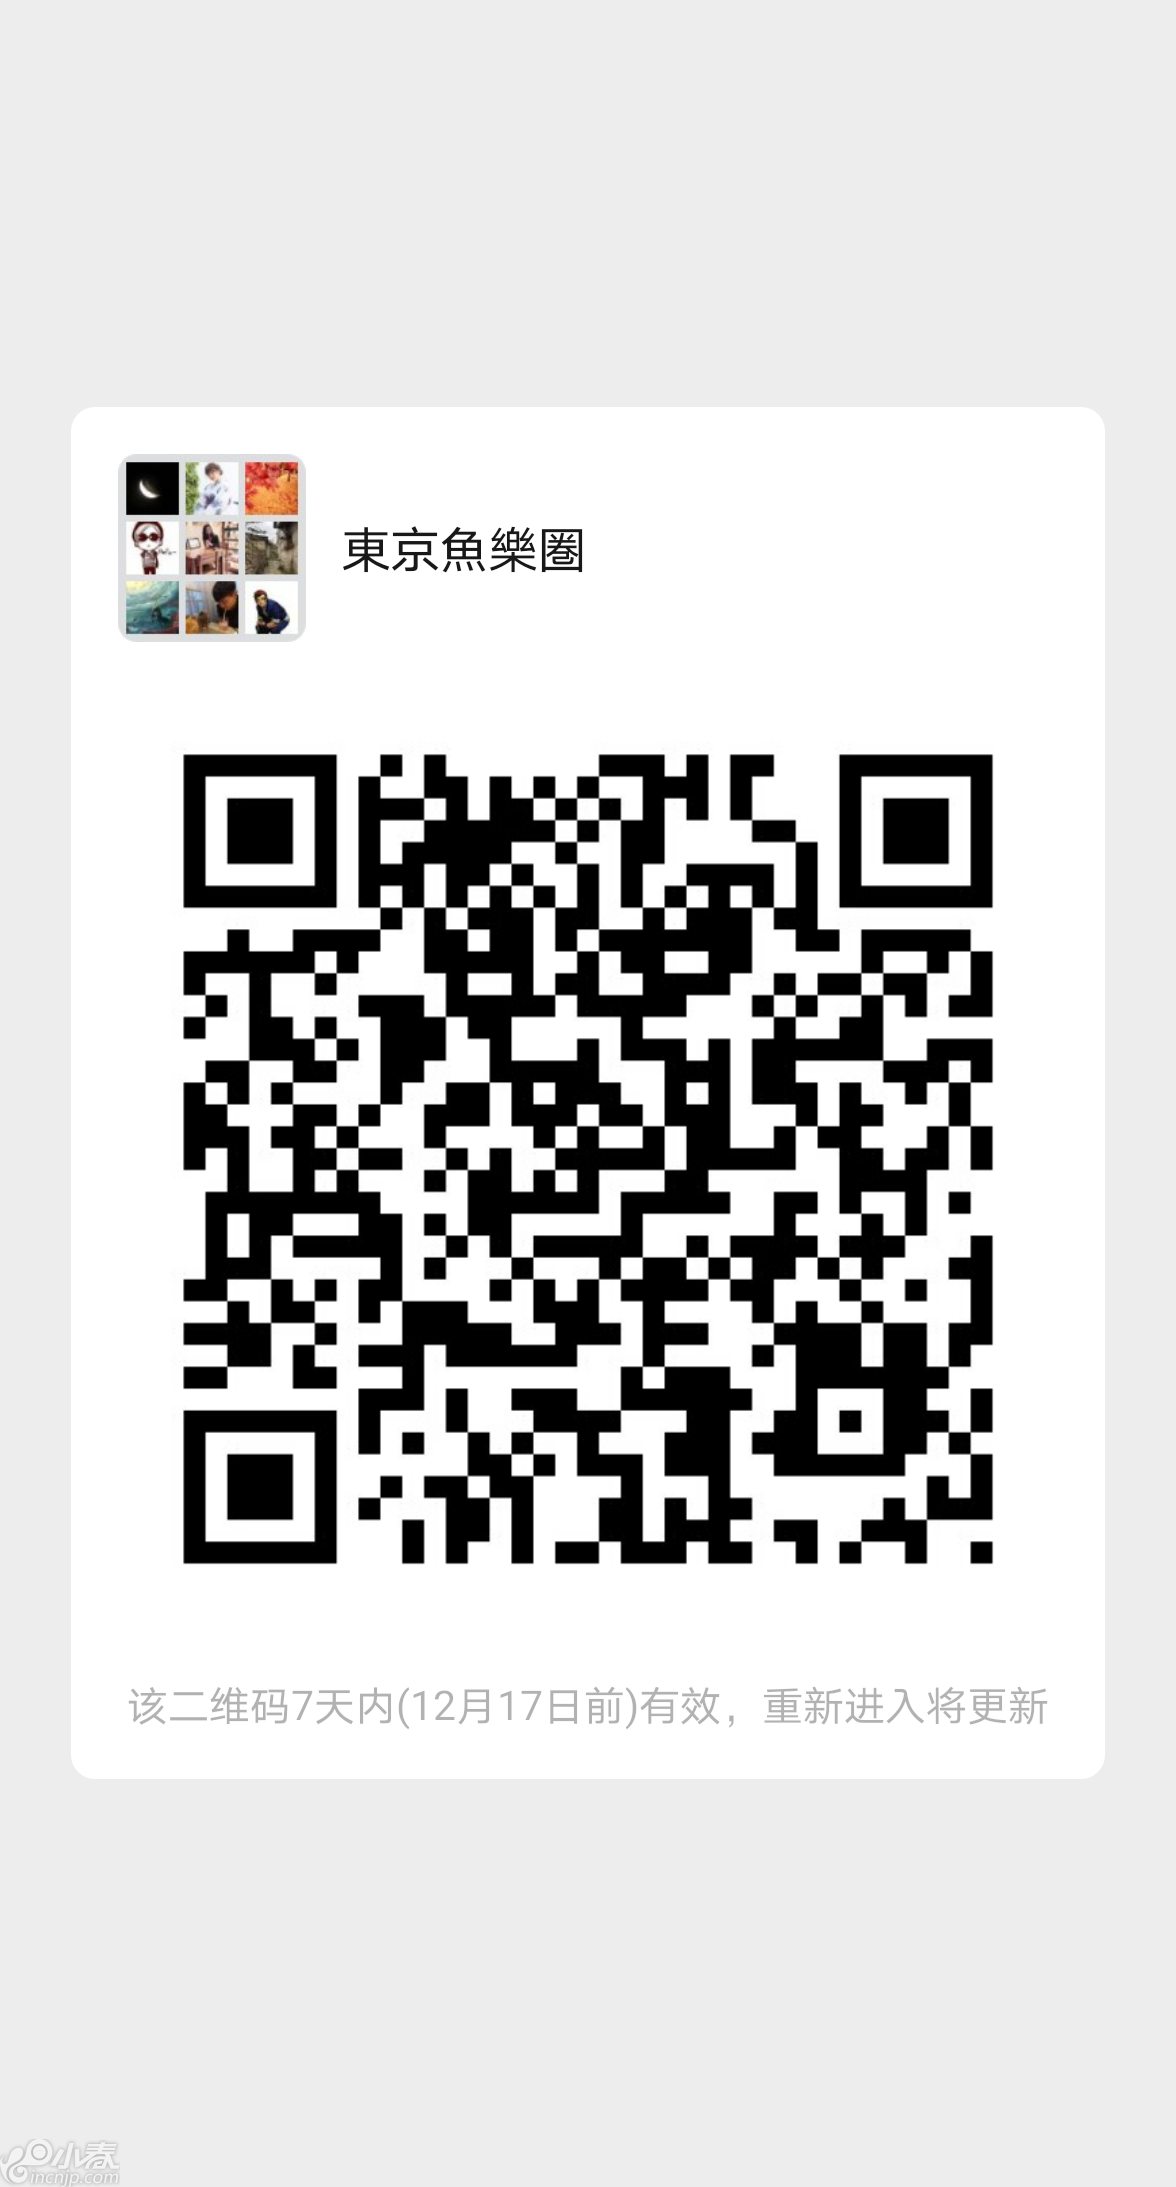 mmqrcode1575981222088.png